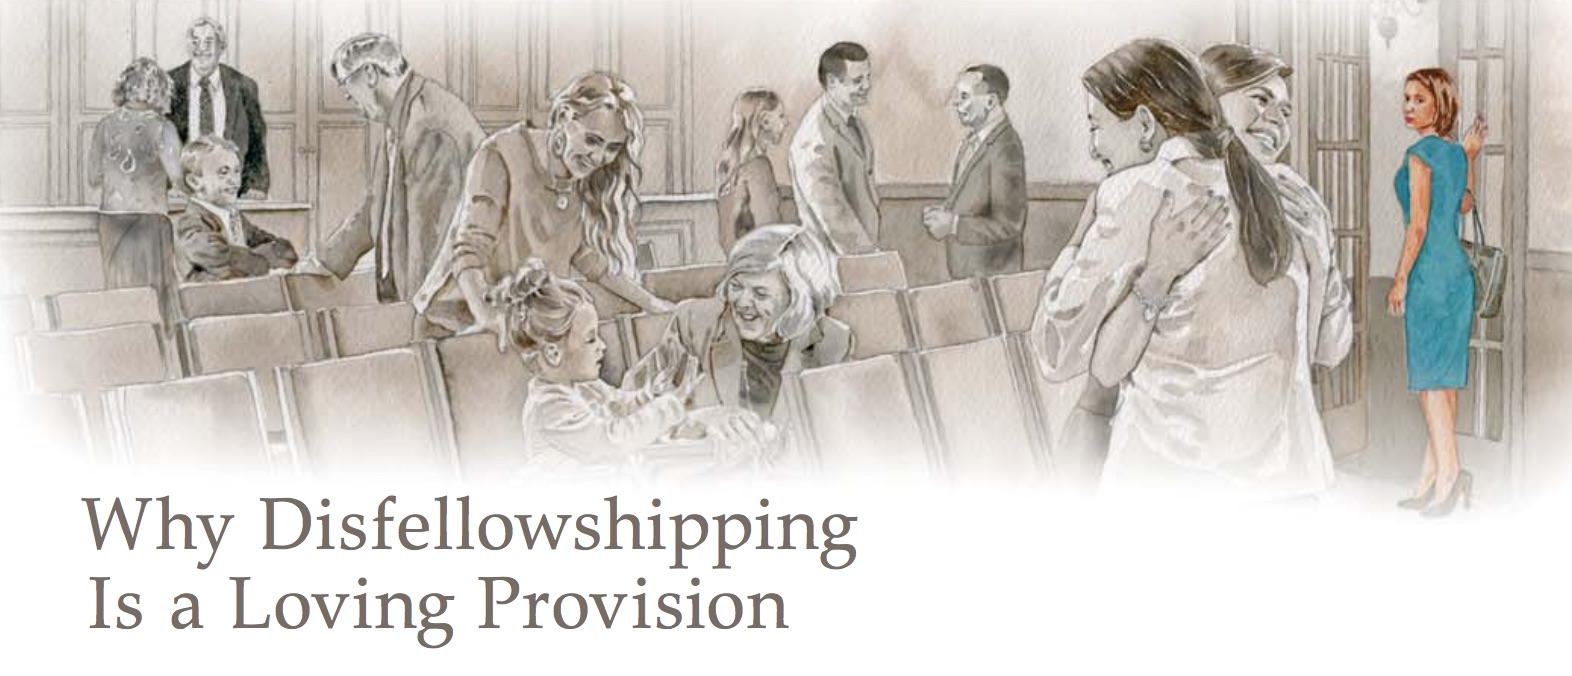 disfellowshipped jw dating